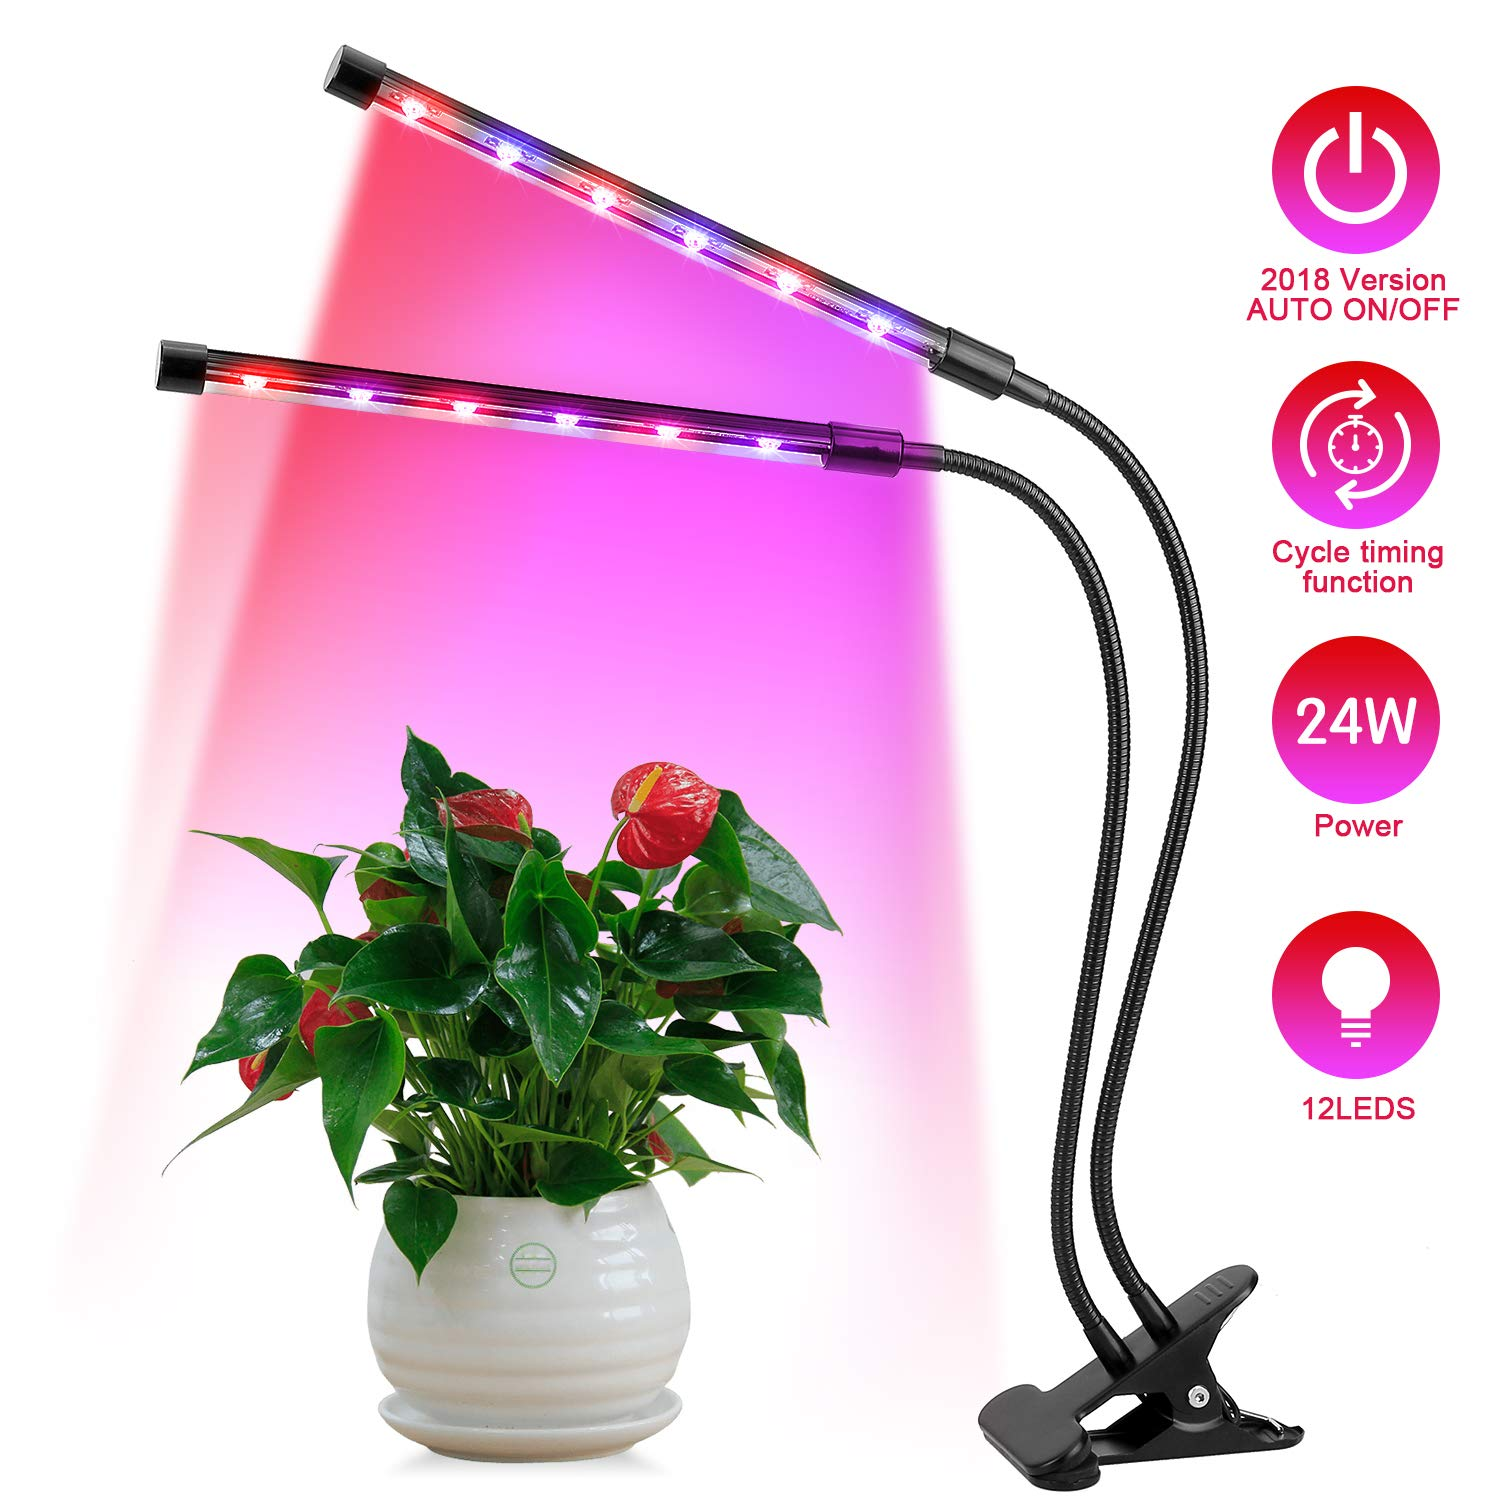 AGM Plant Light, Led Plant Light 24W 12LEDs Indoor Plants Light 3 Modes Timer 4H/8H/12H 4 Levels Dimmable with 360°Adjustable Flexible Gooseneck for Plants Growing Hydroponic in office/Home/Garden[Dual-head; Red: 8, Blue: 4] (24W) AGM EU